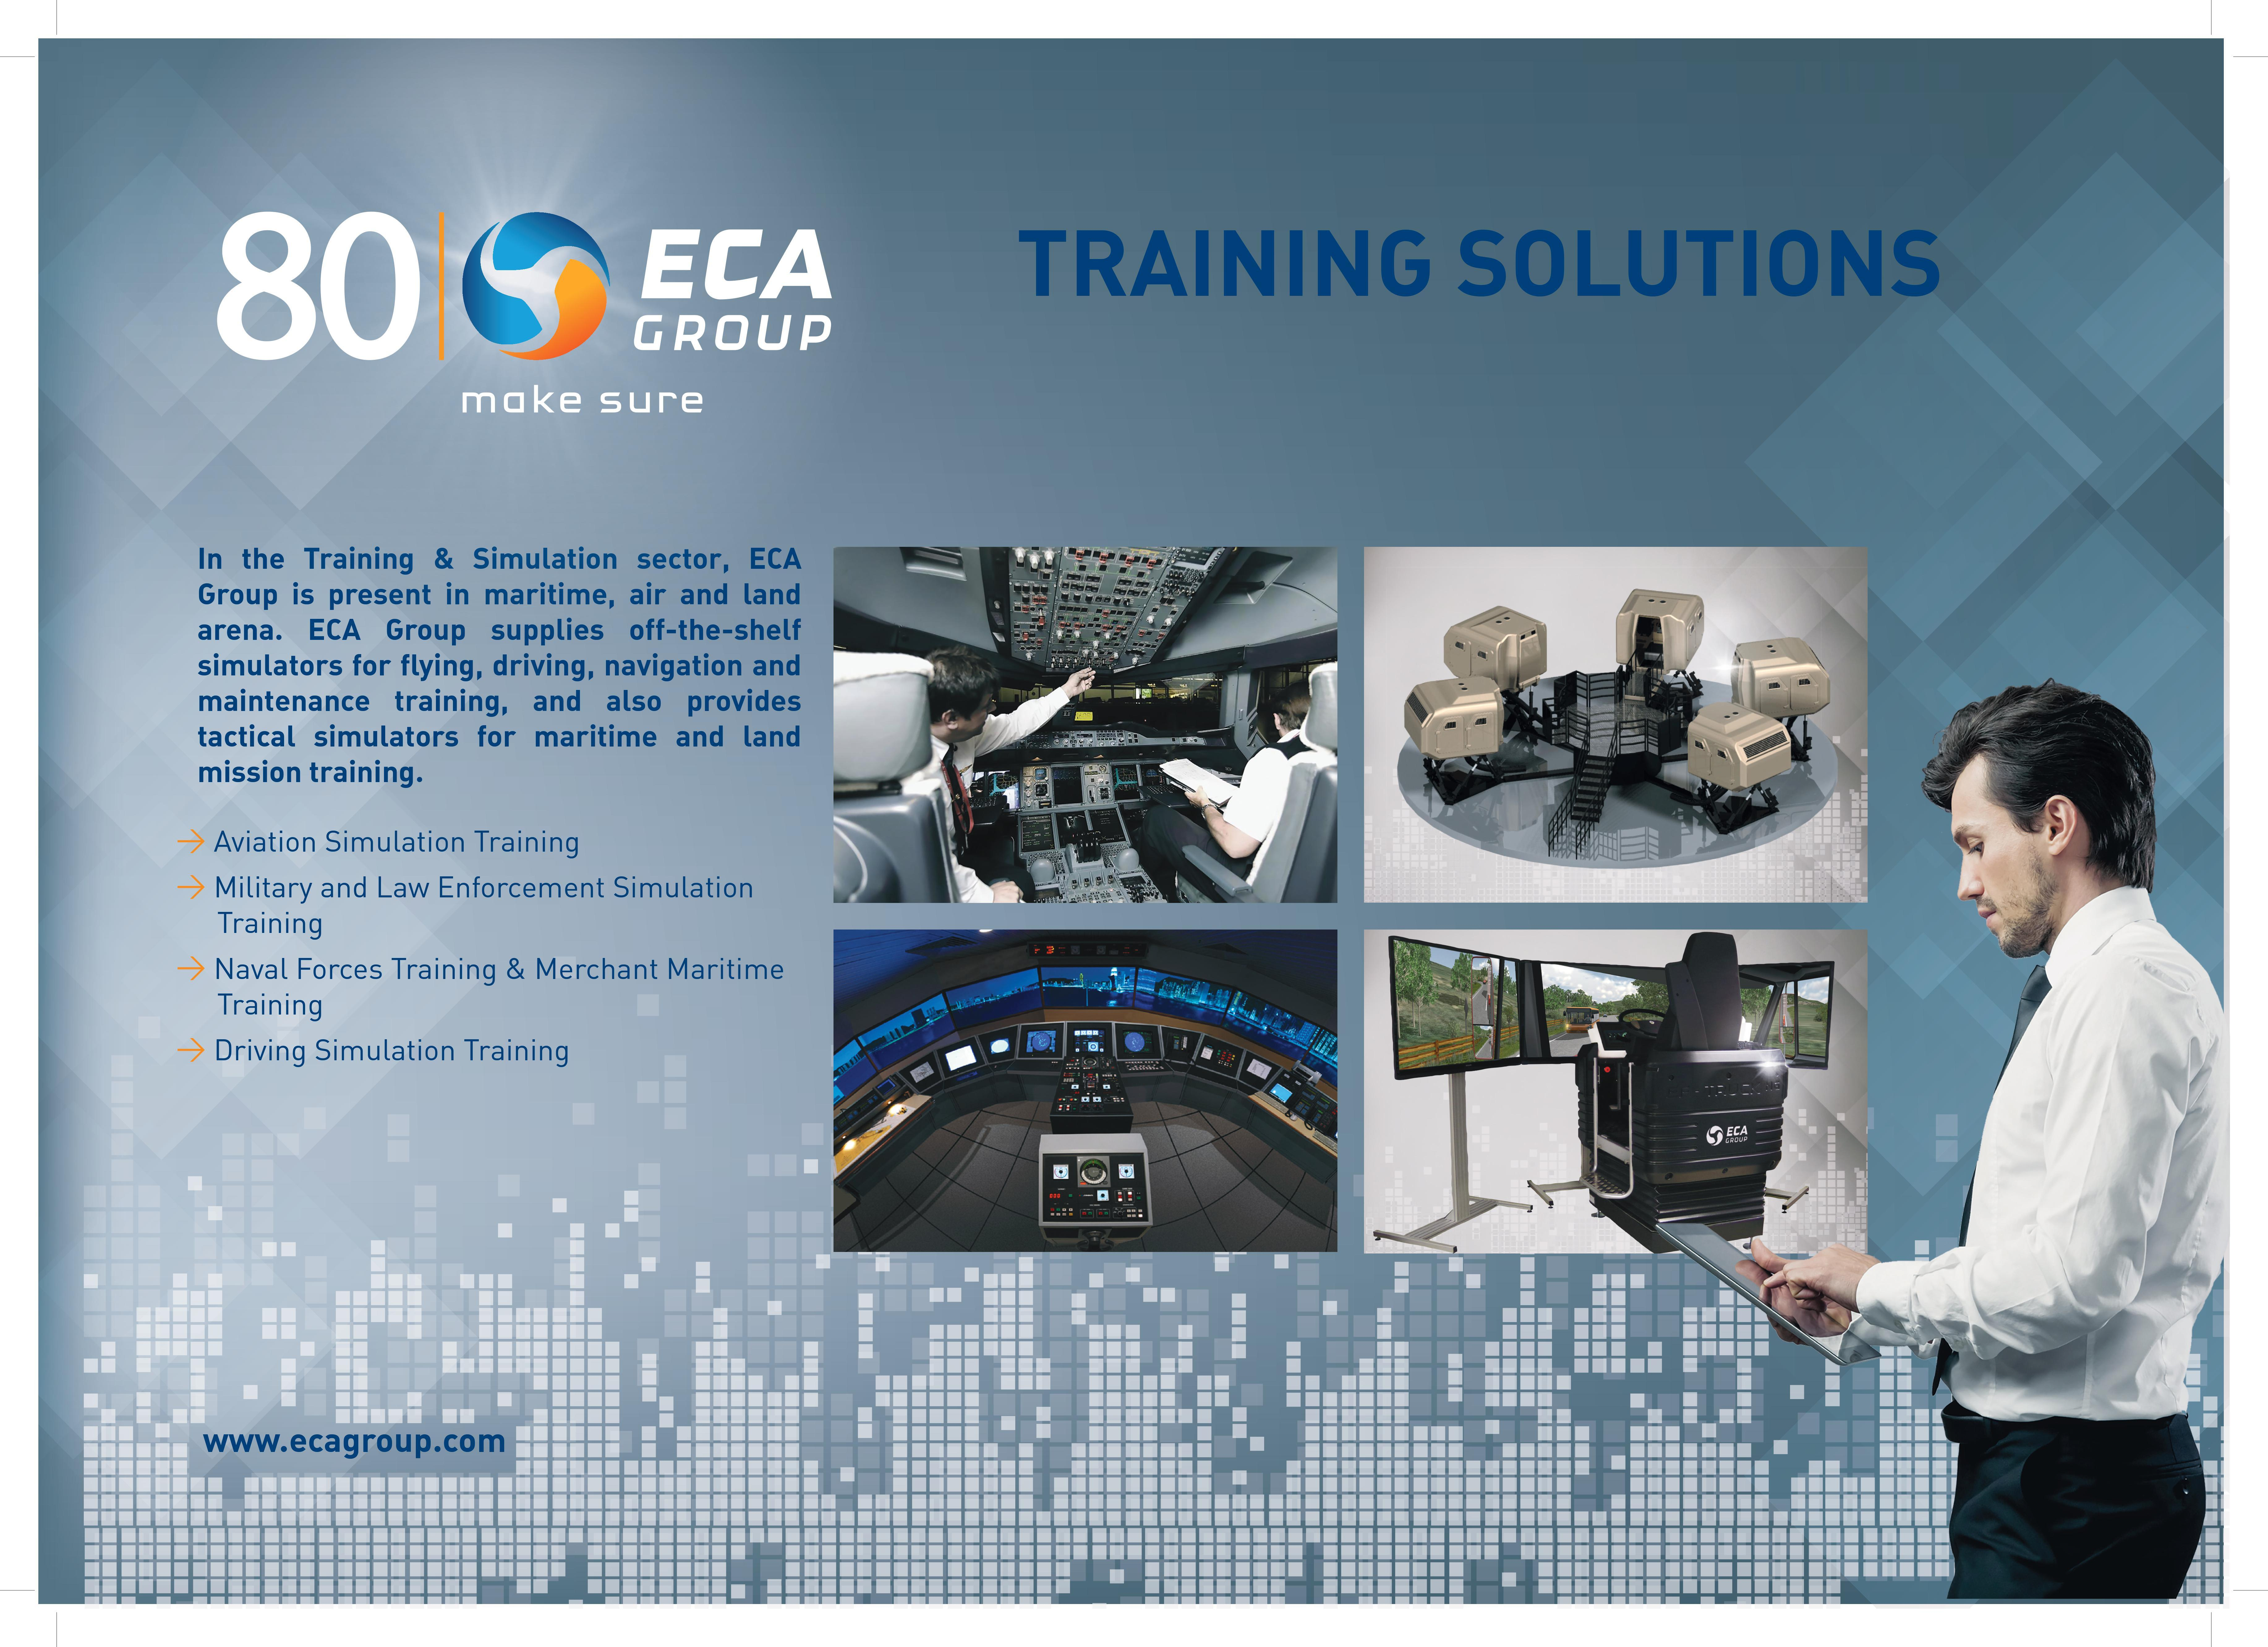 ECA Group Training & Simulation Department